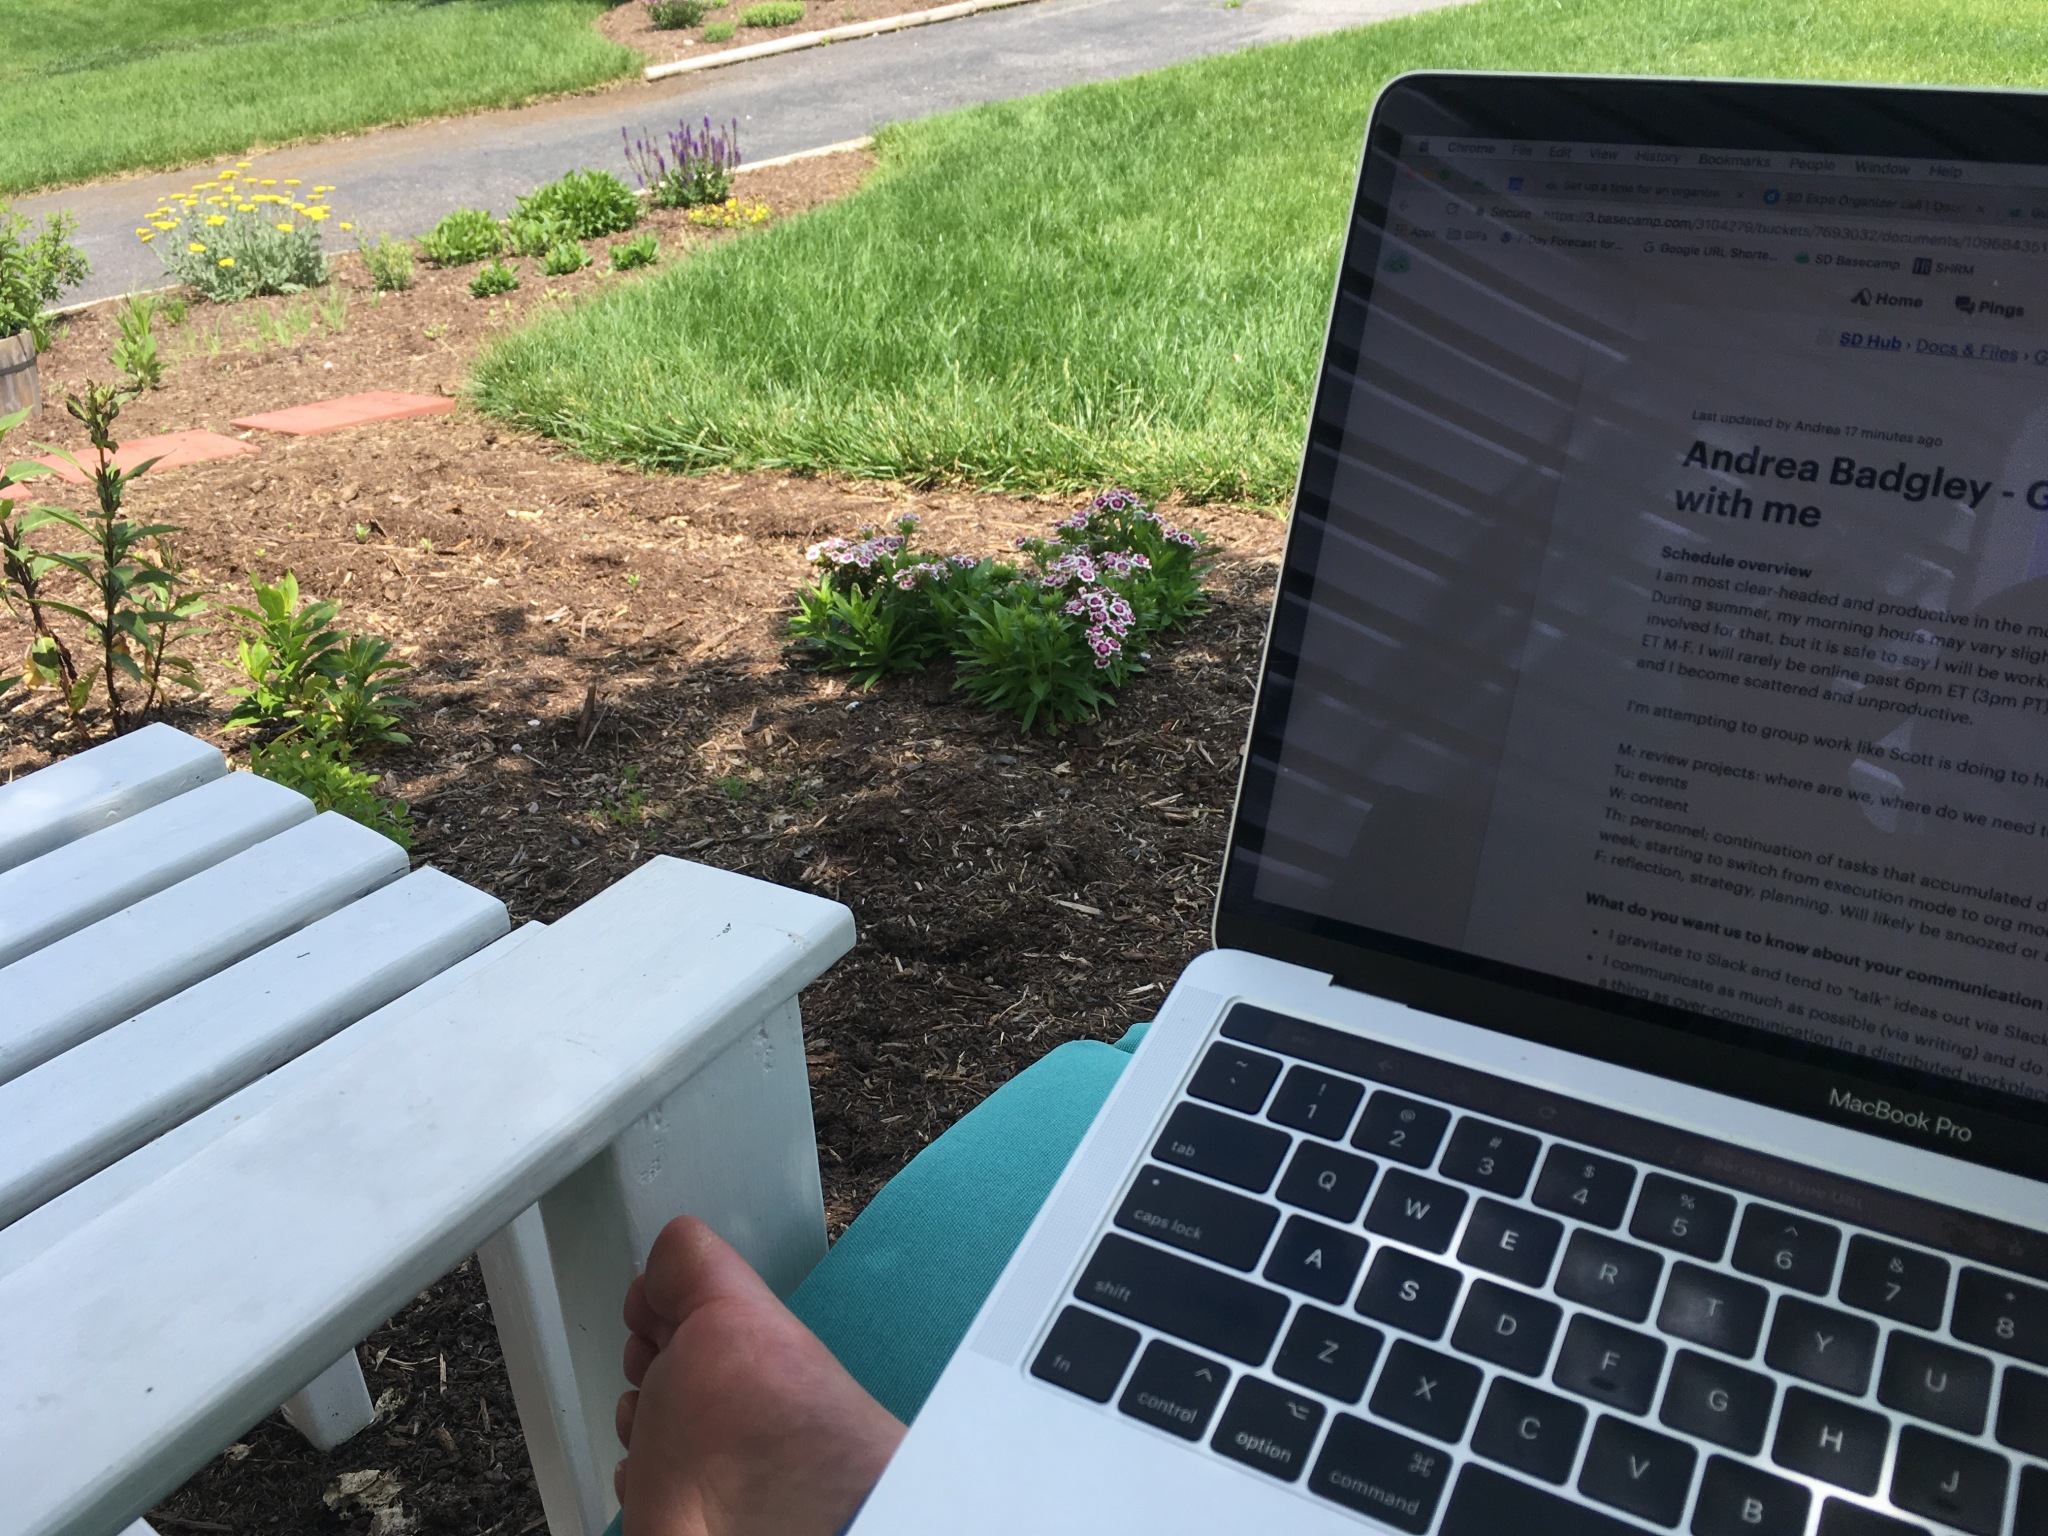 working from the shade of the dogwood